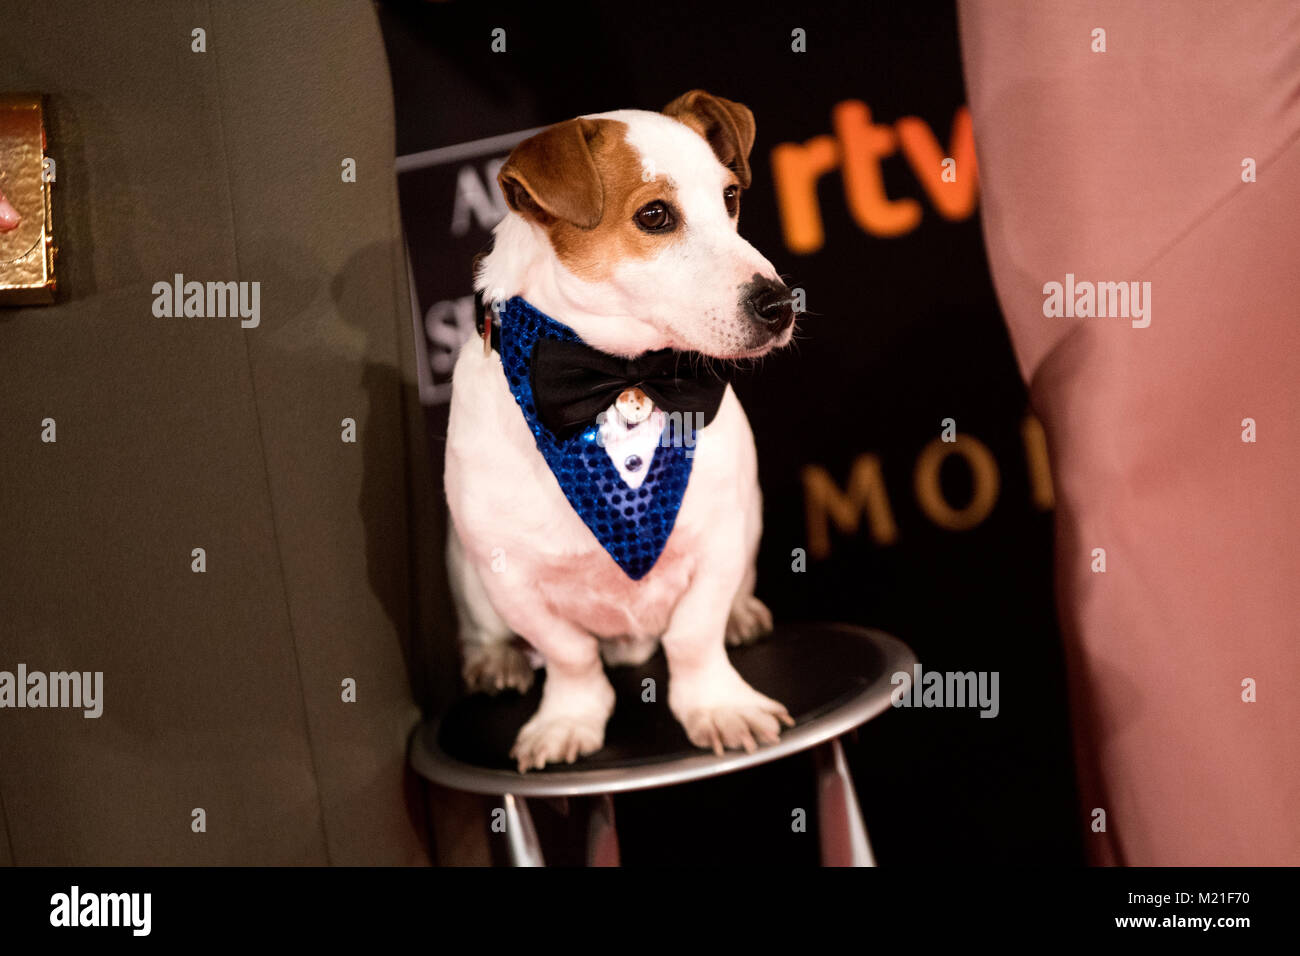 Madrid, Spain. 3rd February, 2018. 'Pancho', a dog which appears in some Spanish films during the red carpet - Stock Image